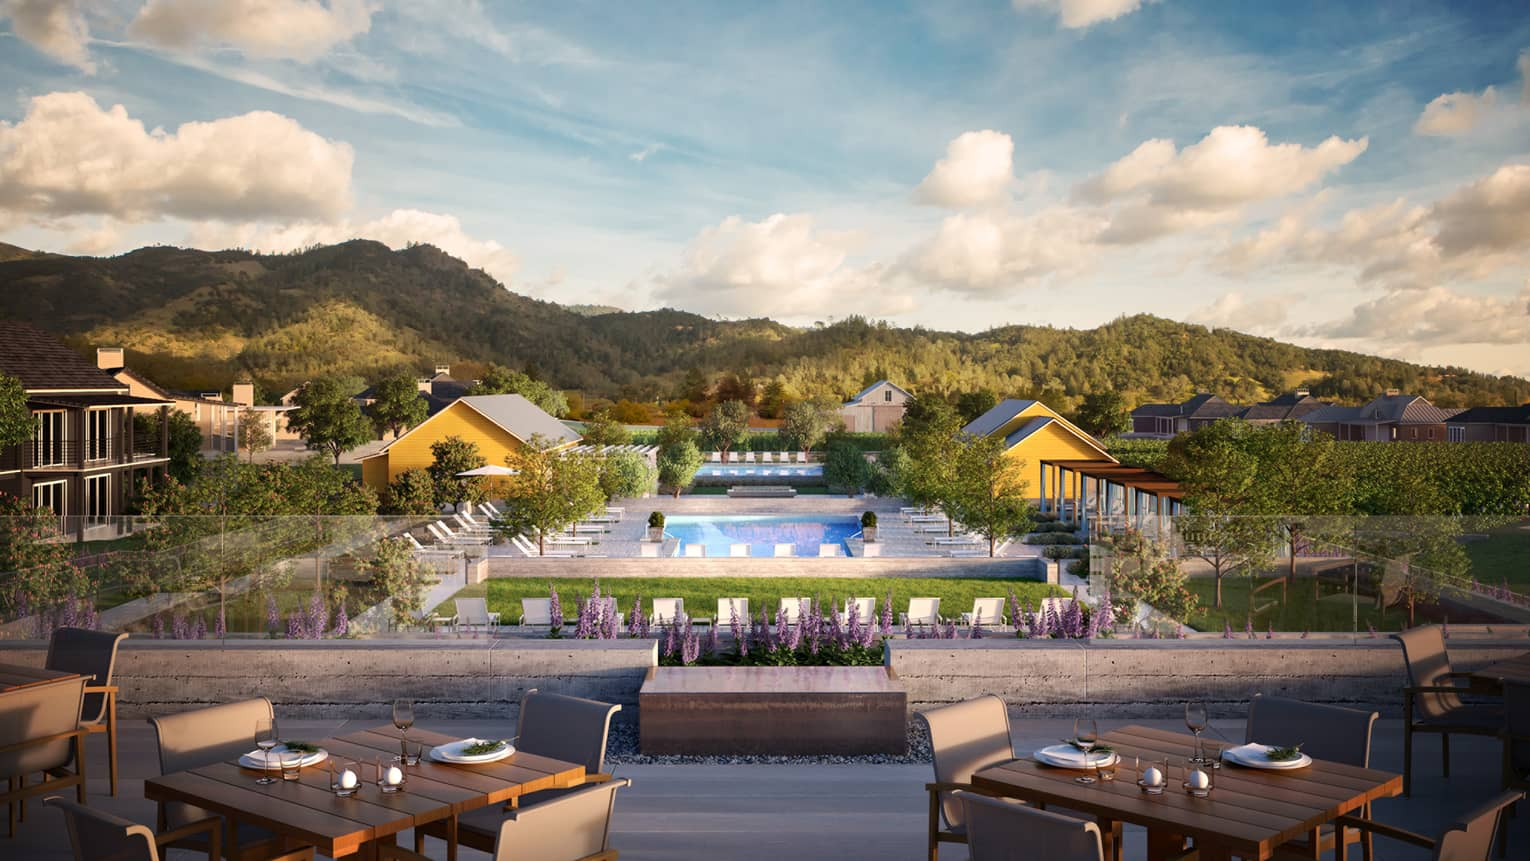 Patio dining tables overlooking resort pool, bungalows, green mountains